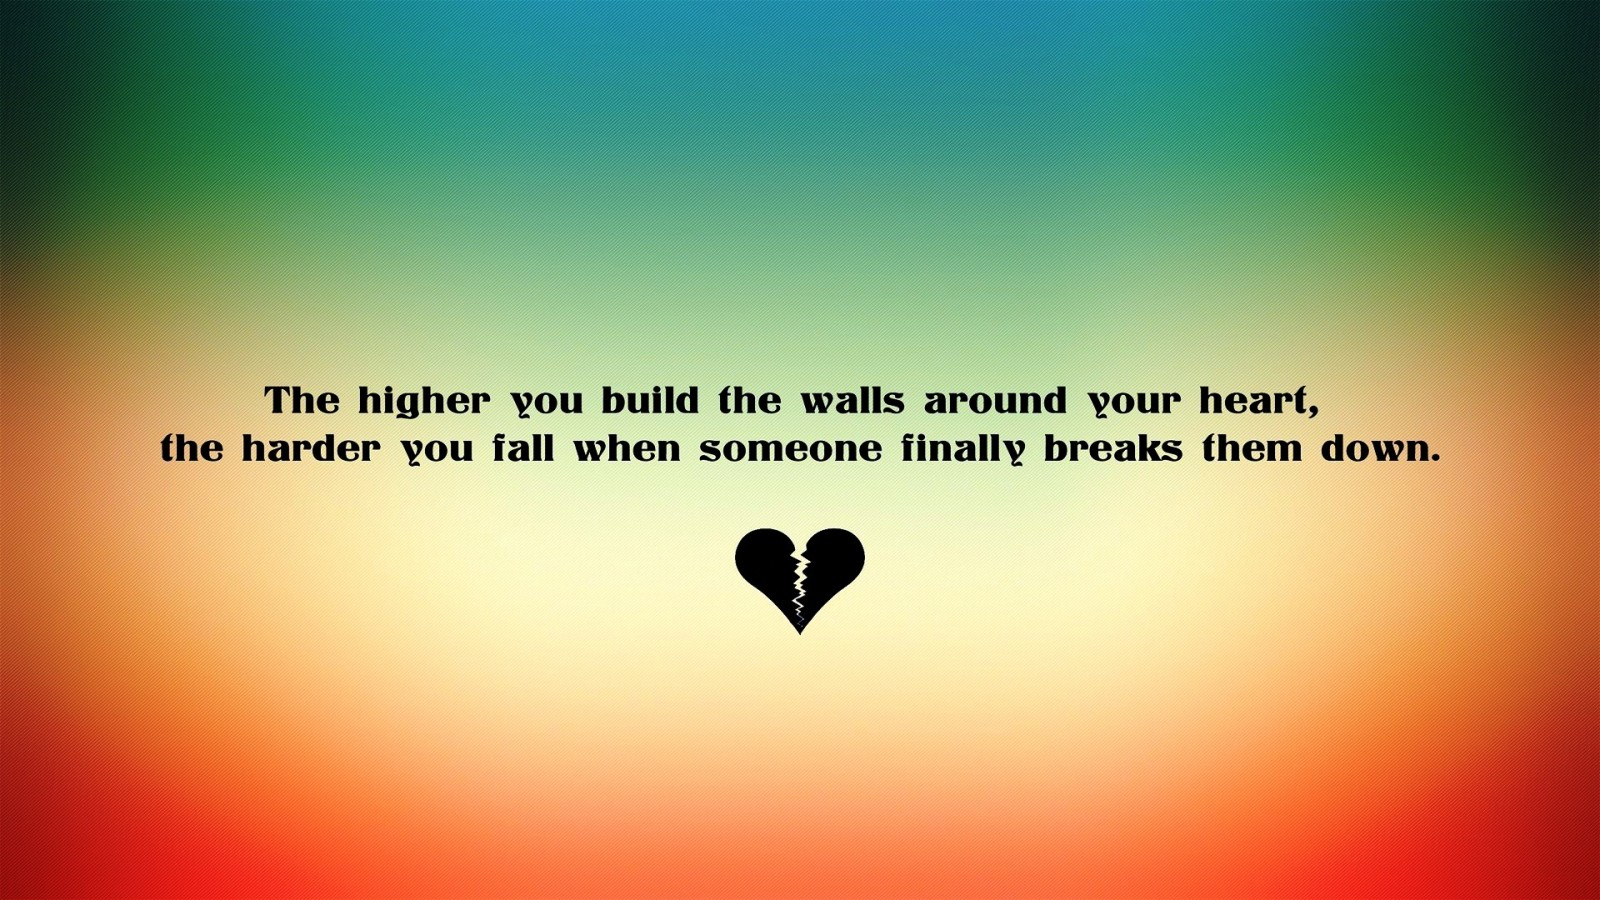 25 Broken Heart Quotes with Images